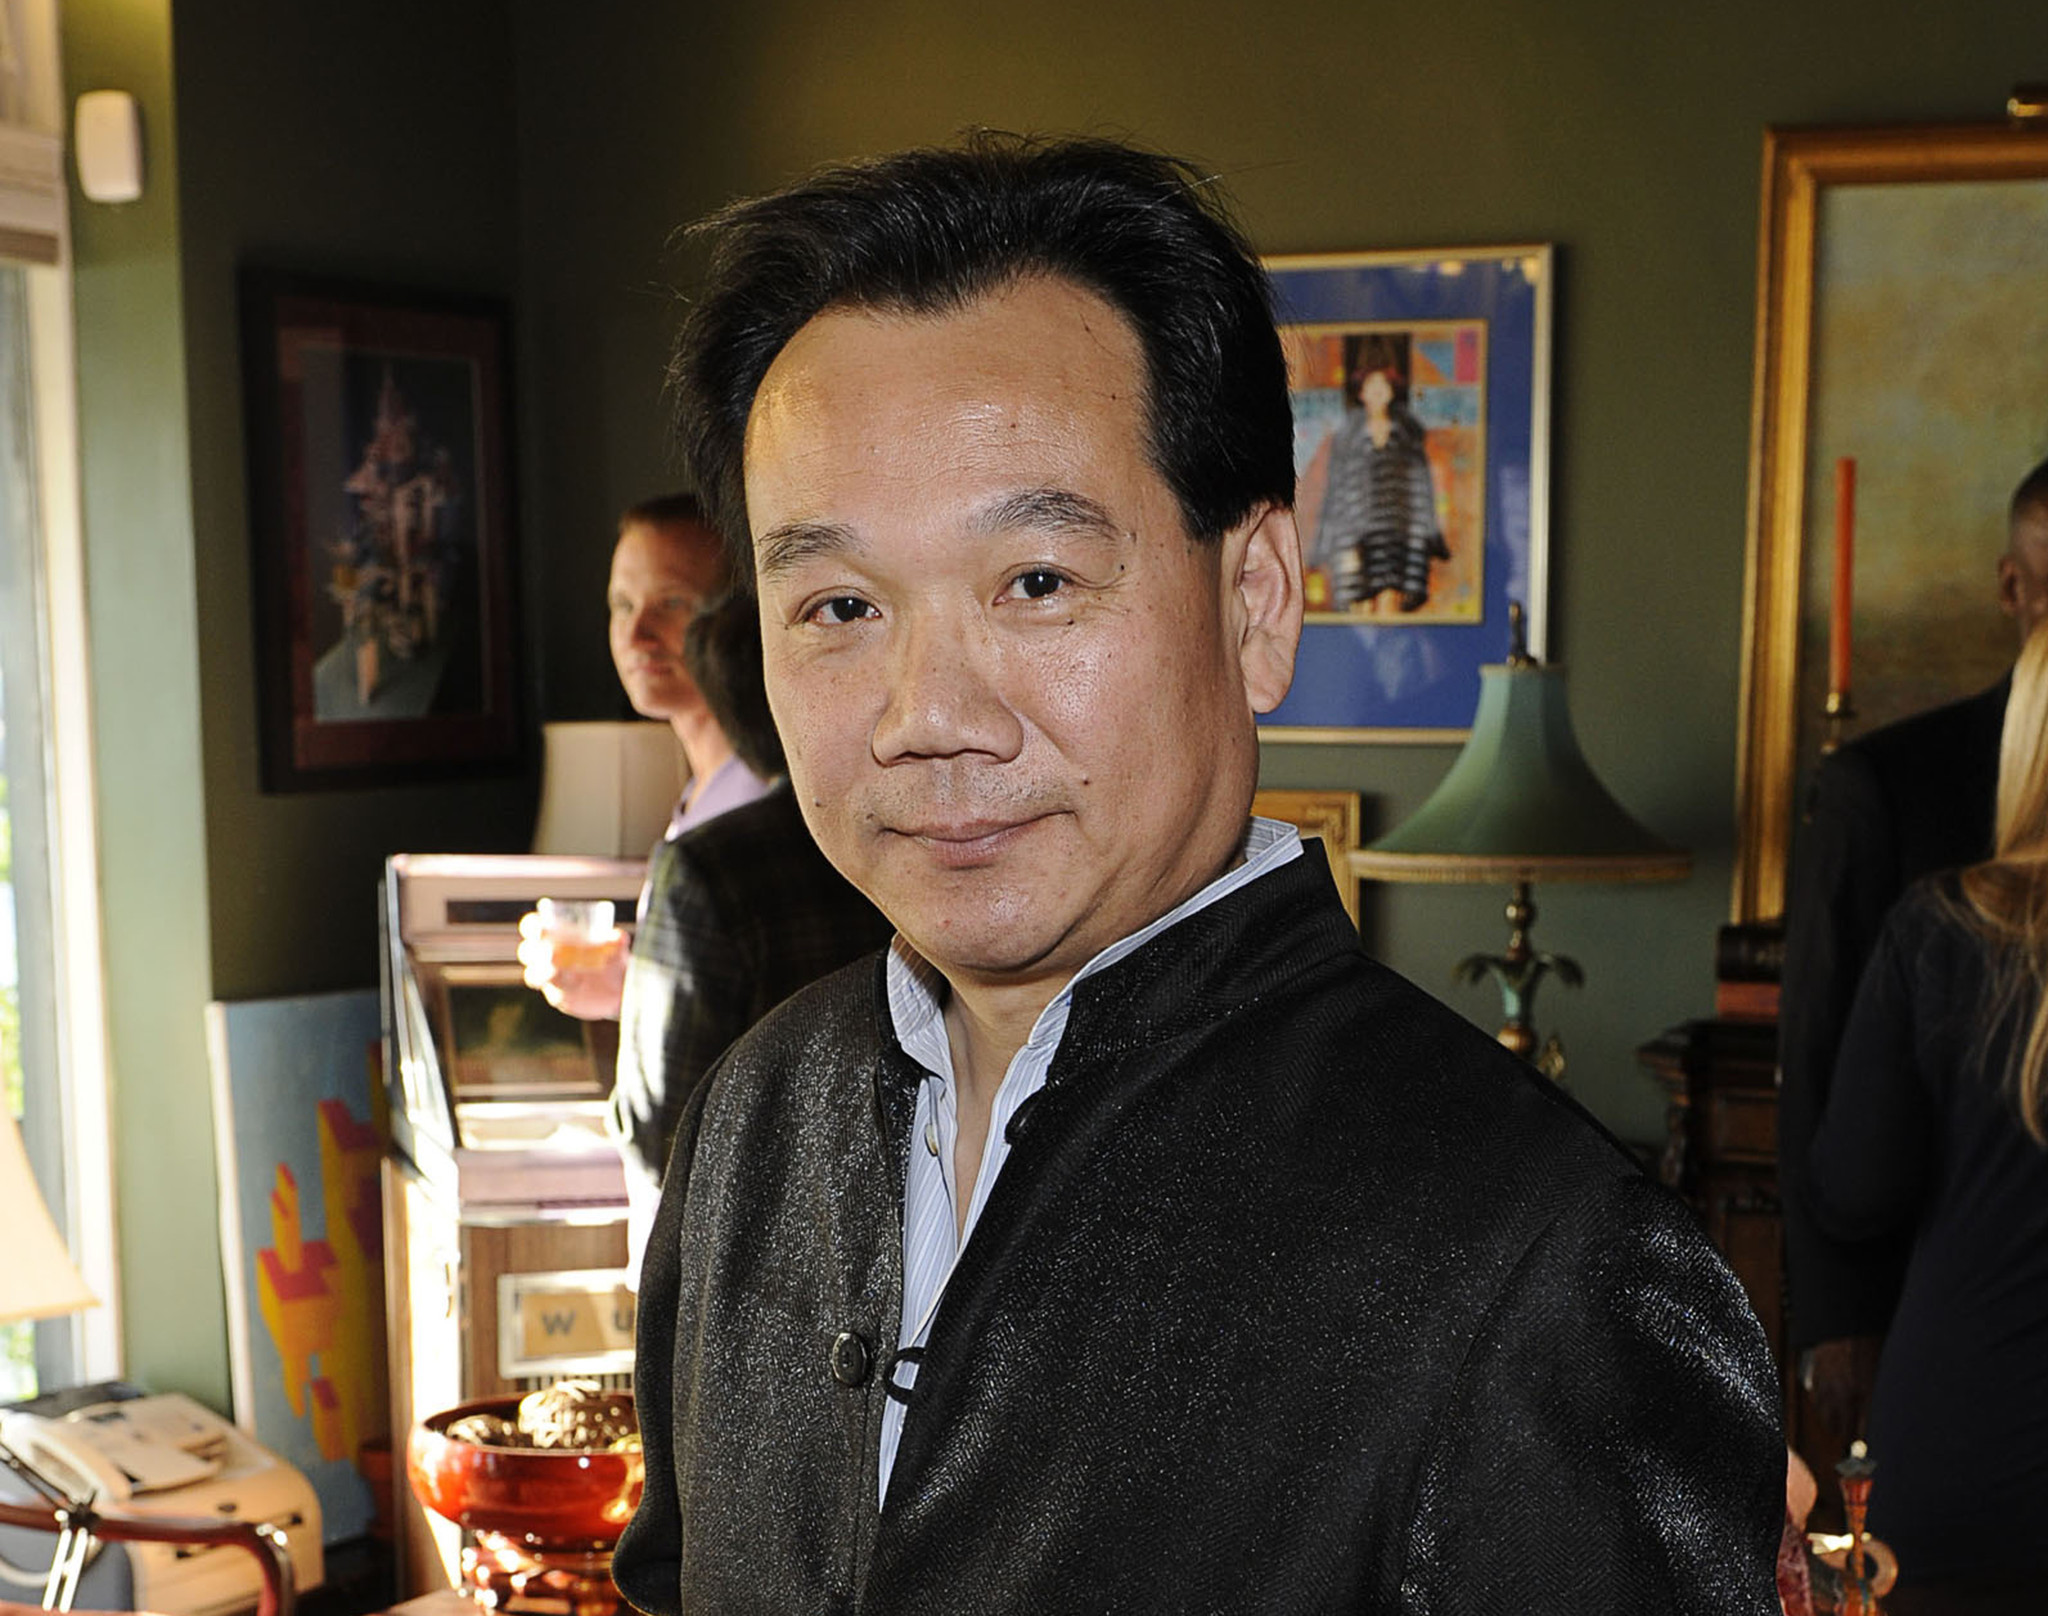 Best-selling 'Colors of the Mountains' author Da Chen, 57, dies of lung cancer